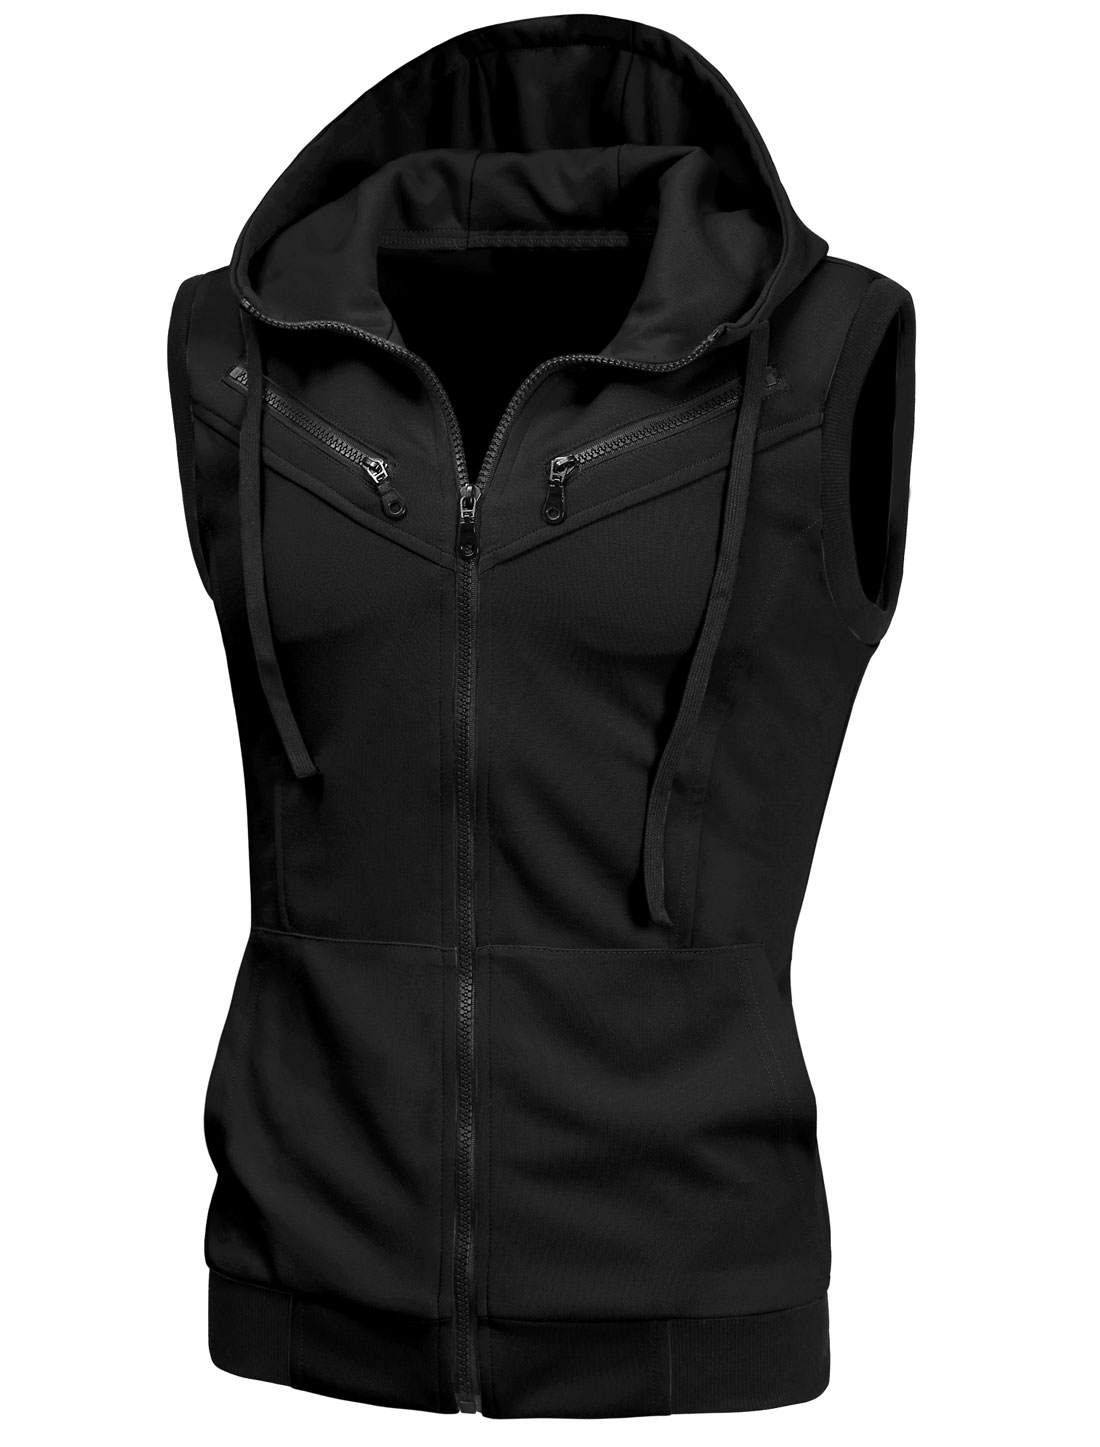 Men Full Zipper Two Pockets Drawstring Hooded Vest Black S